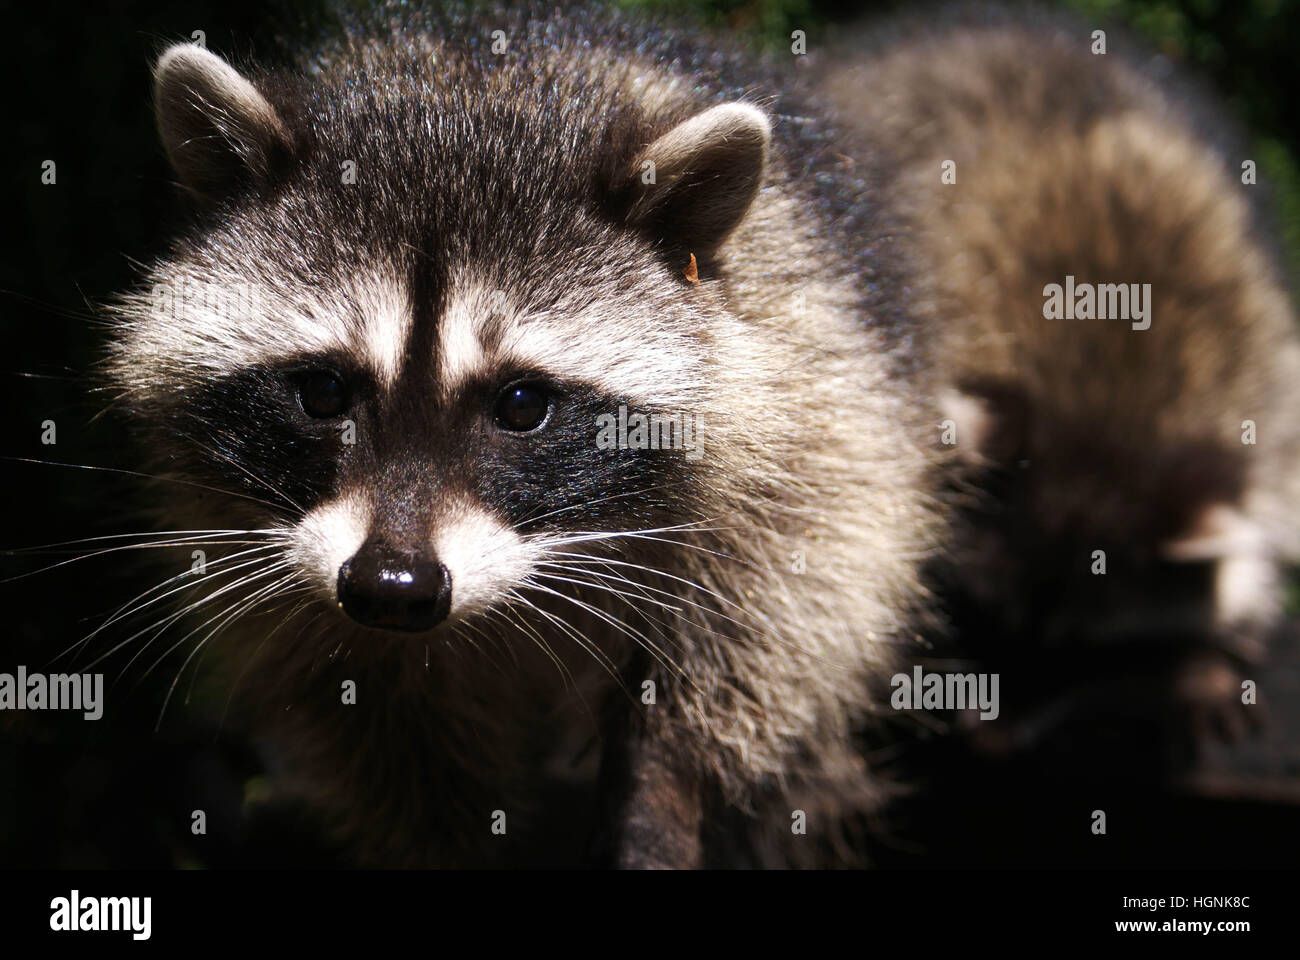 A Curious Raccoon looks directly into the camera - Stock Image